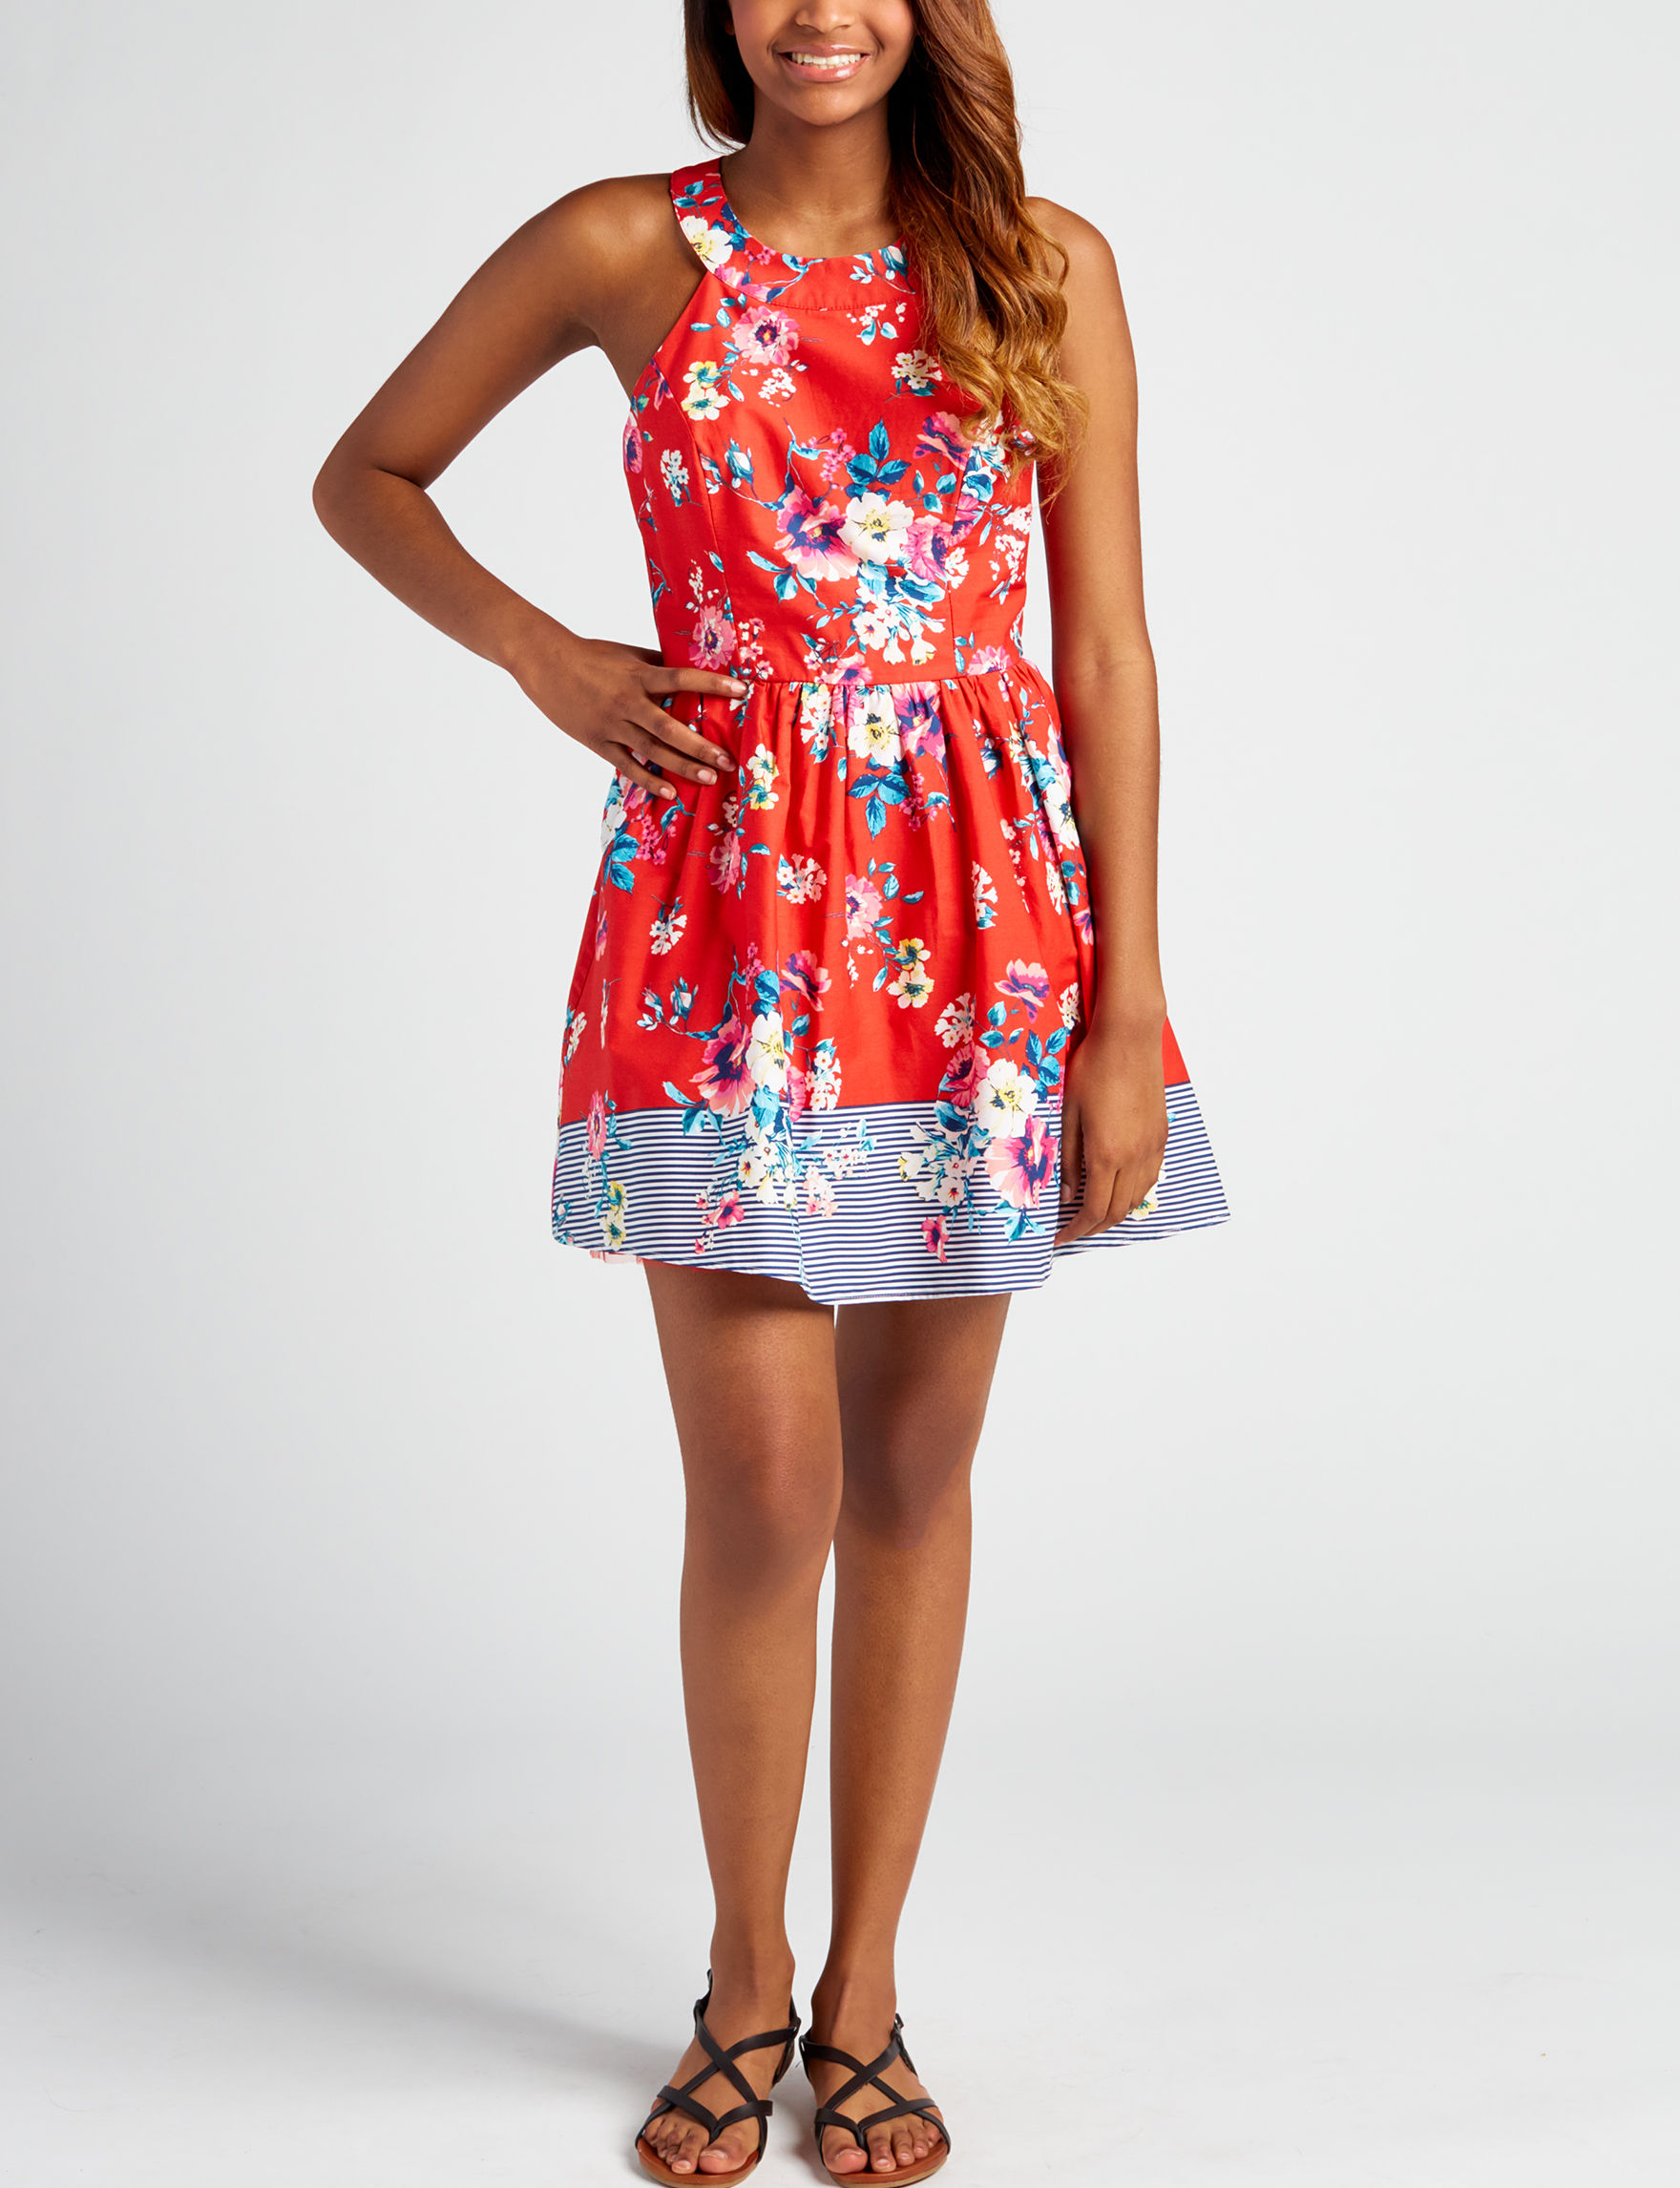 Trixxi Red Floral Everyday & Casual Fit & Flare Dresses Sundresses